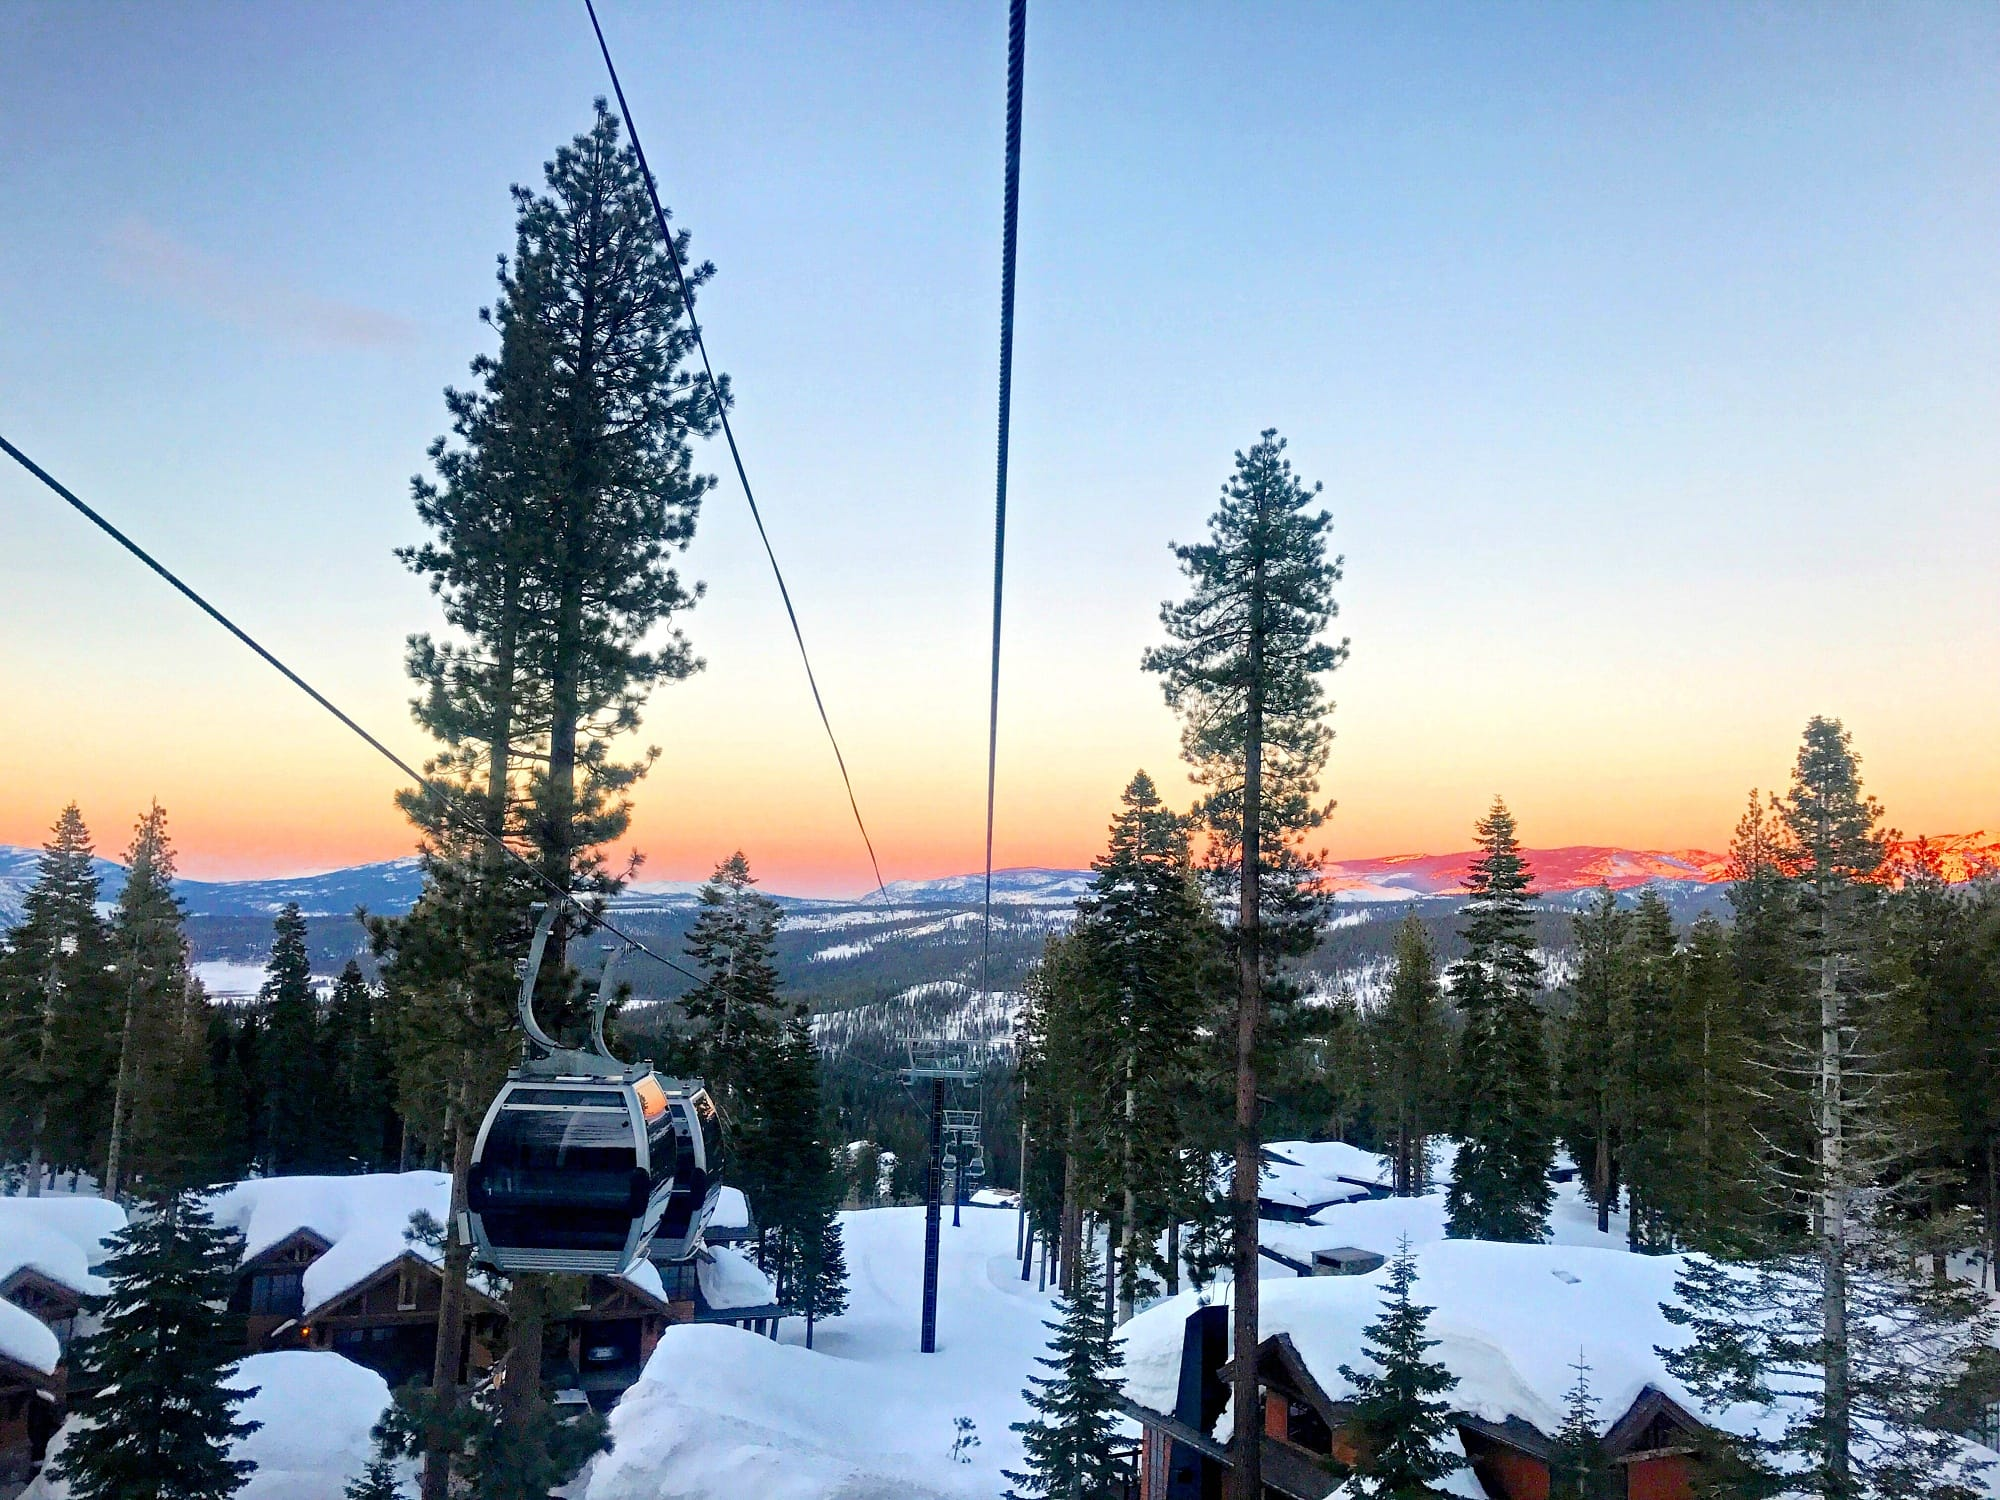 Take the gondola to mid-mountain for cross country skiing, snowshoeing and fat biking at Northstar Ski Resort with kids